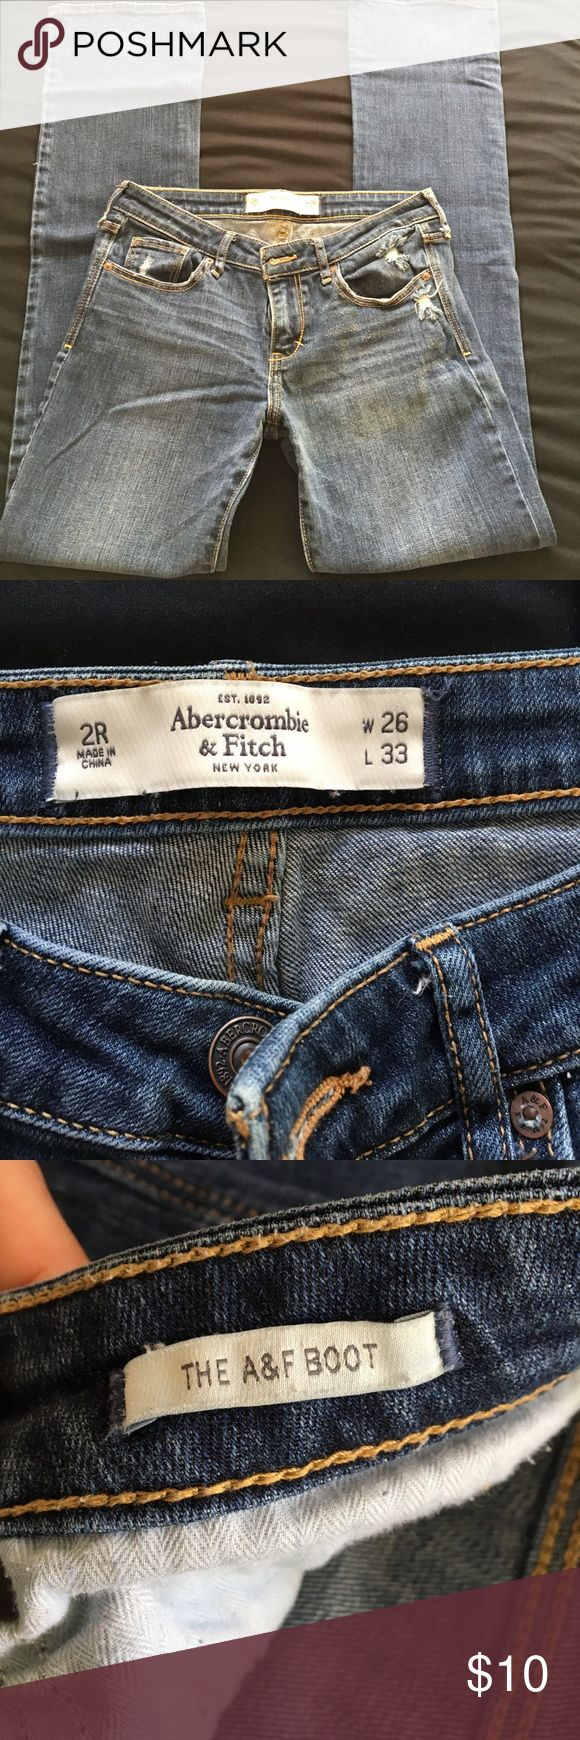 Abercrombie and Fitch Boot cut Jeans Great used condition!! Size 26 regular (2) Abercrombie and Fitch Boot cut Jeans in medium wash. Abercrombie & Fitch Jeans Boot Cut